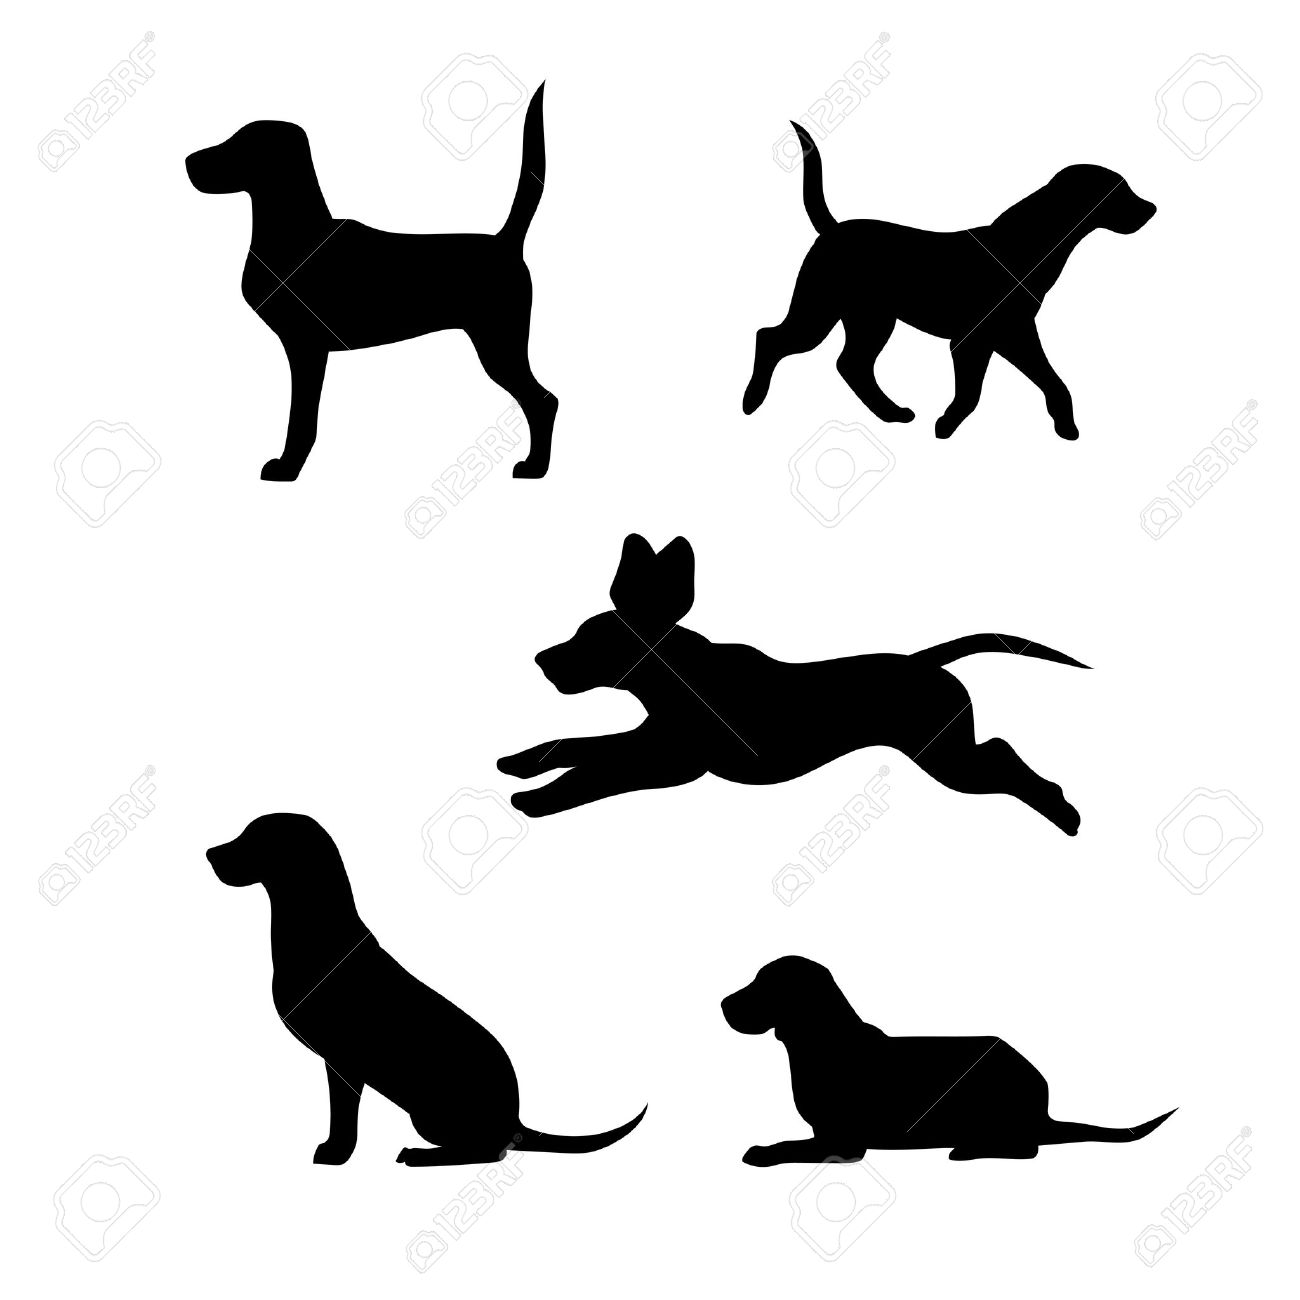 Golden Retriever Silhouette Clip Art